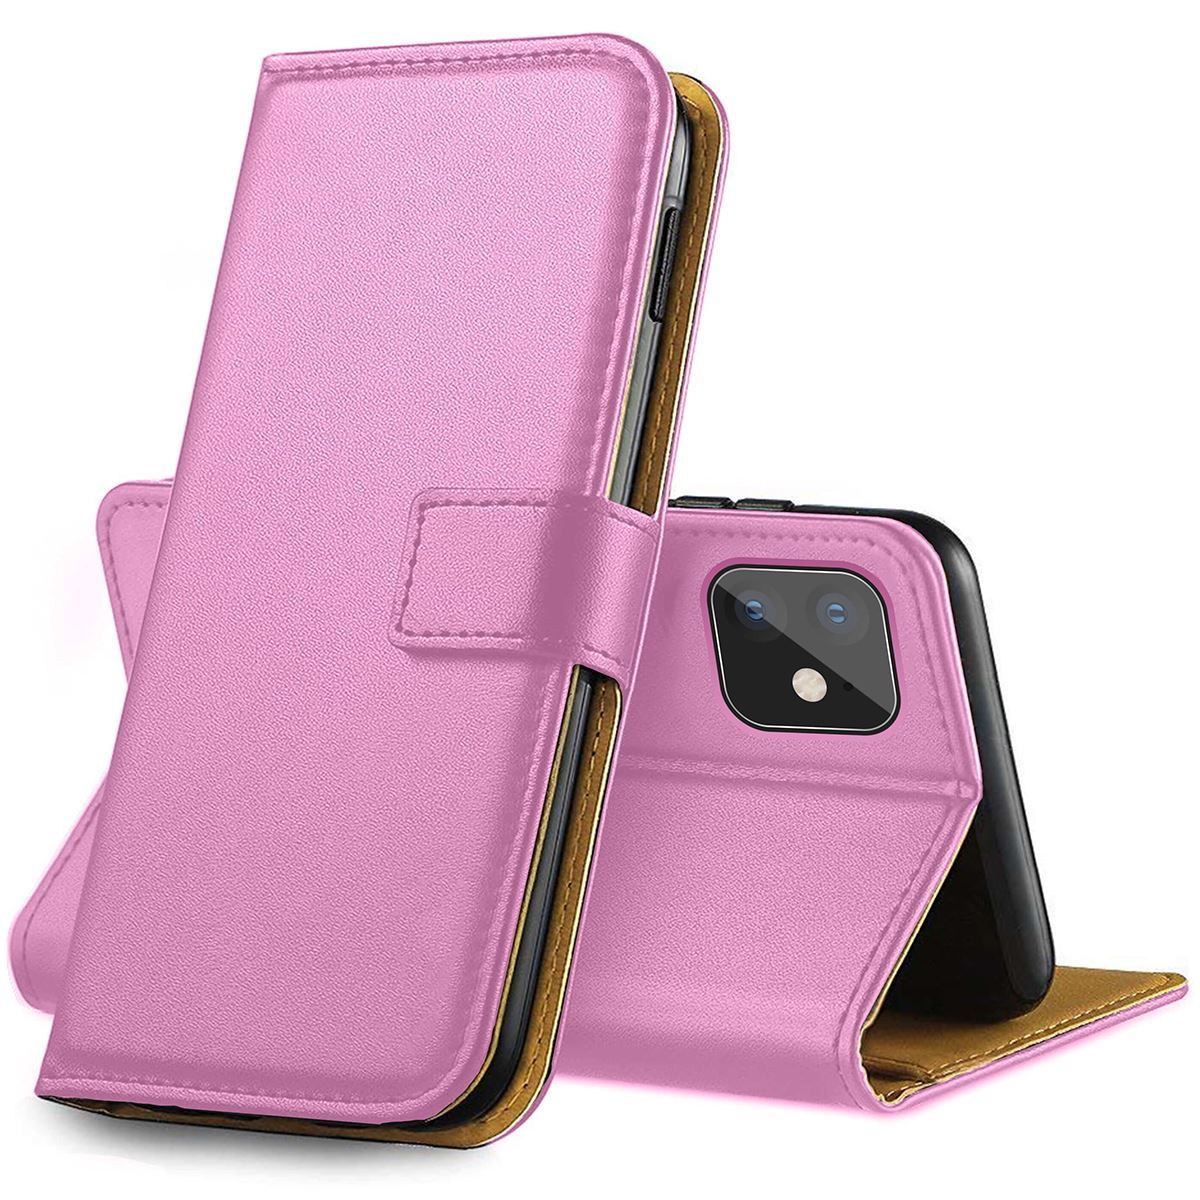 Genuine Leather Flip Wallet Case with Cash / Card Slots For Apple iPhone 5 / SE (2016)